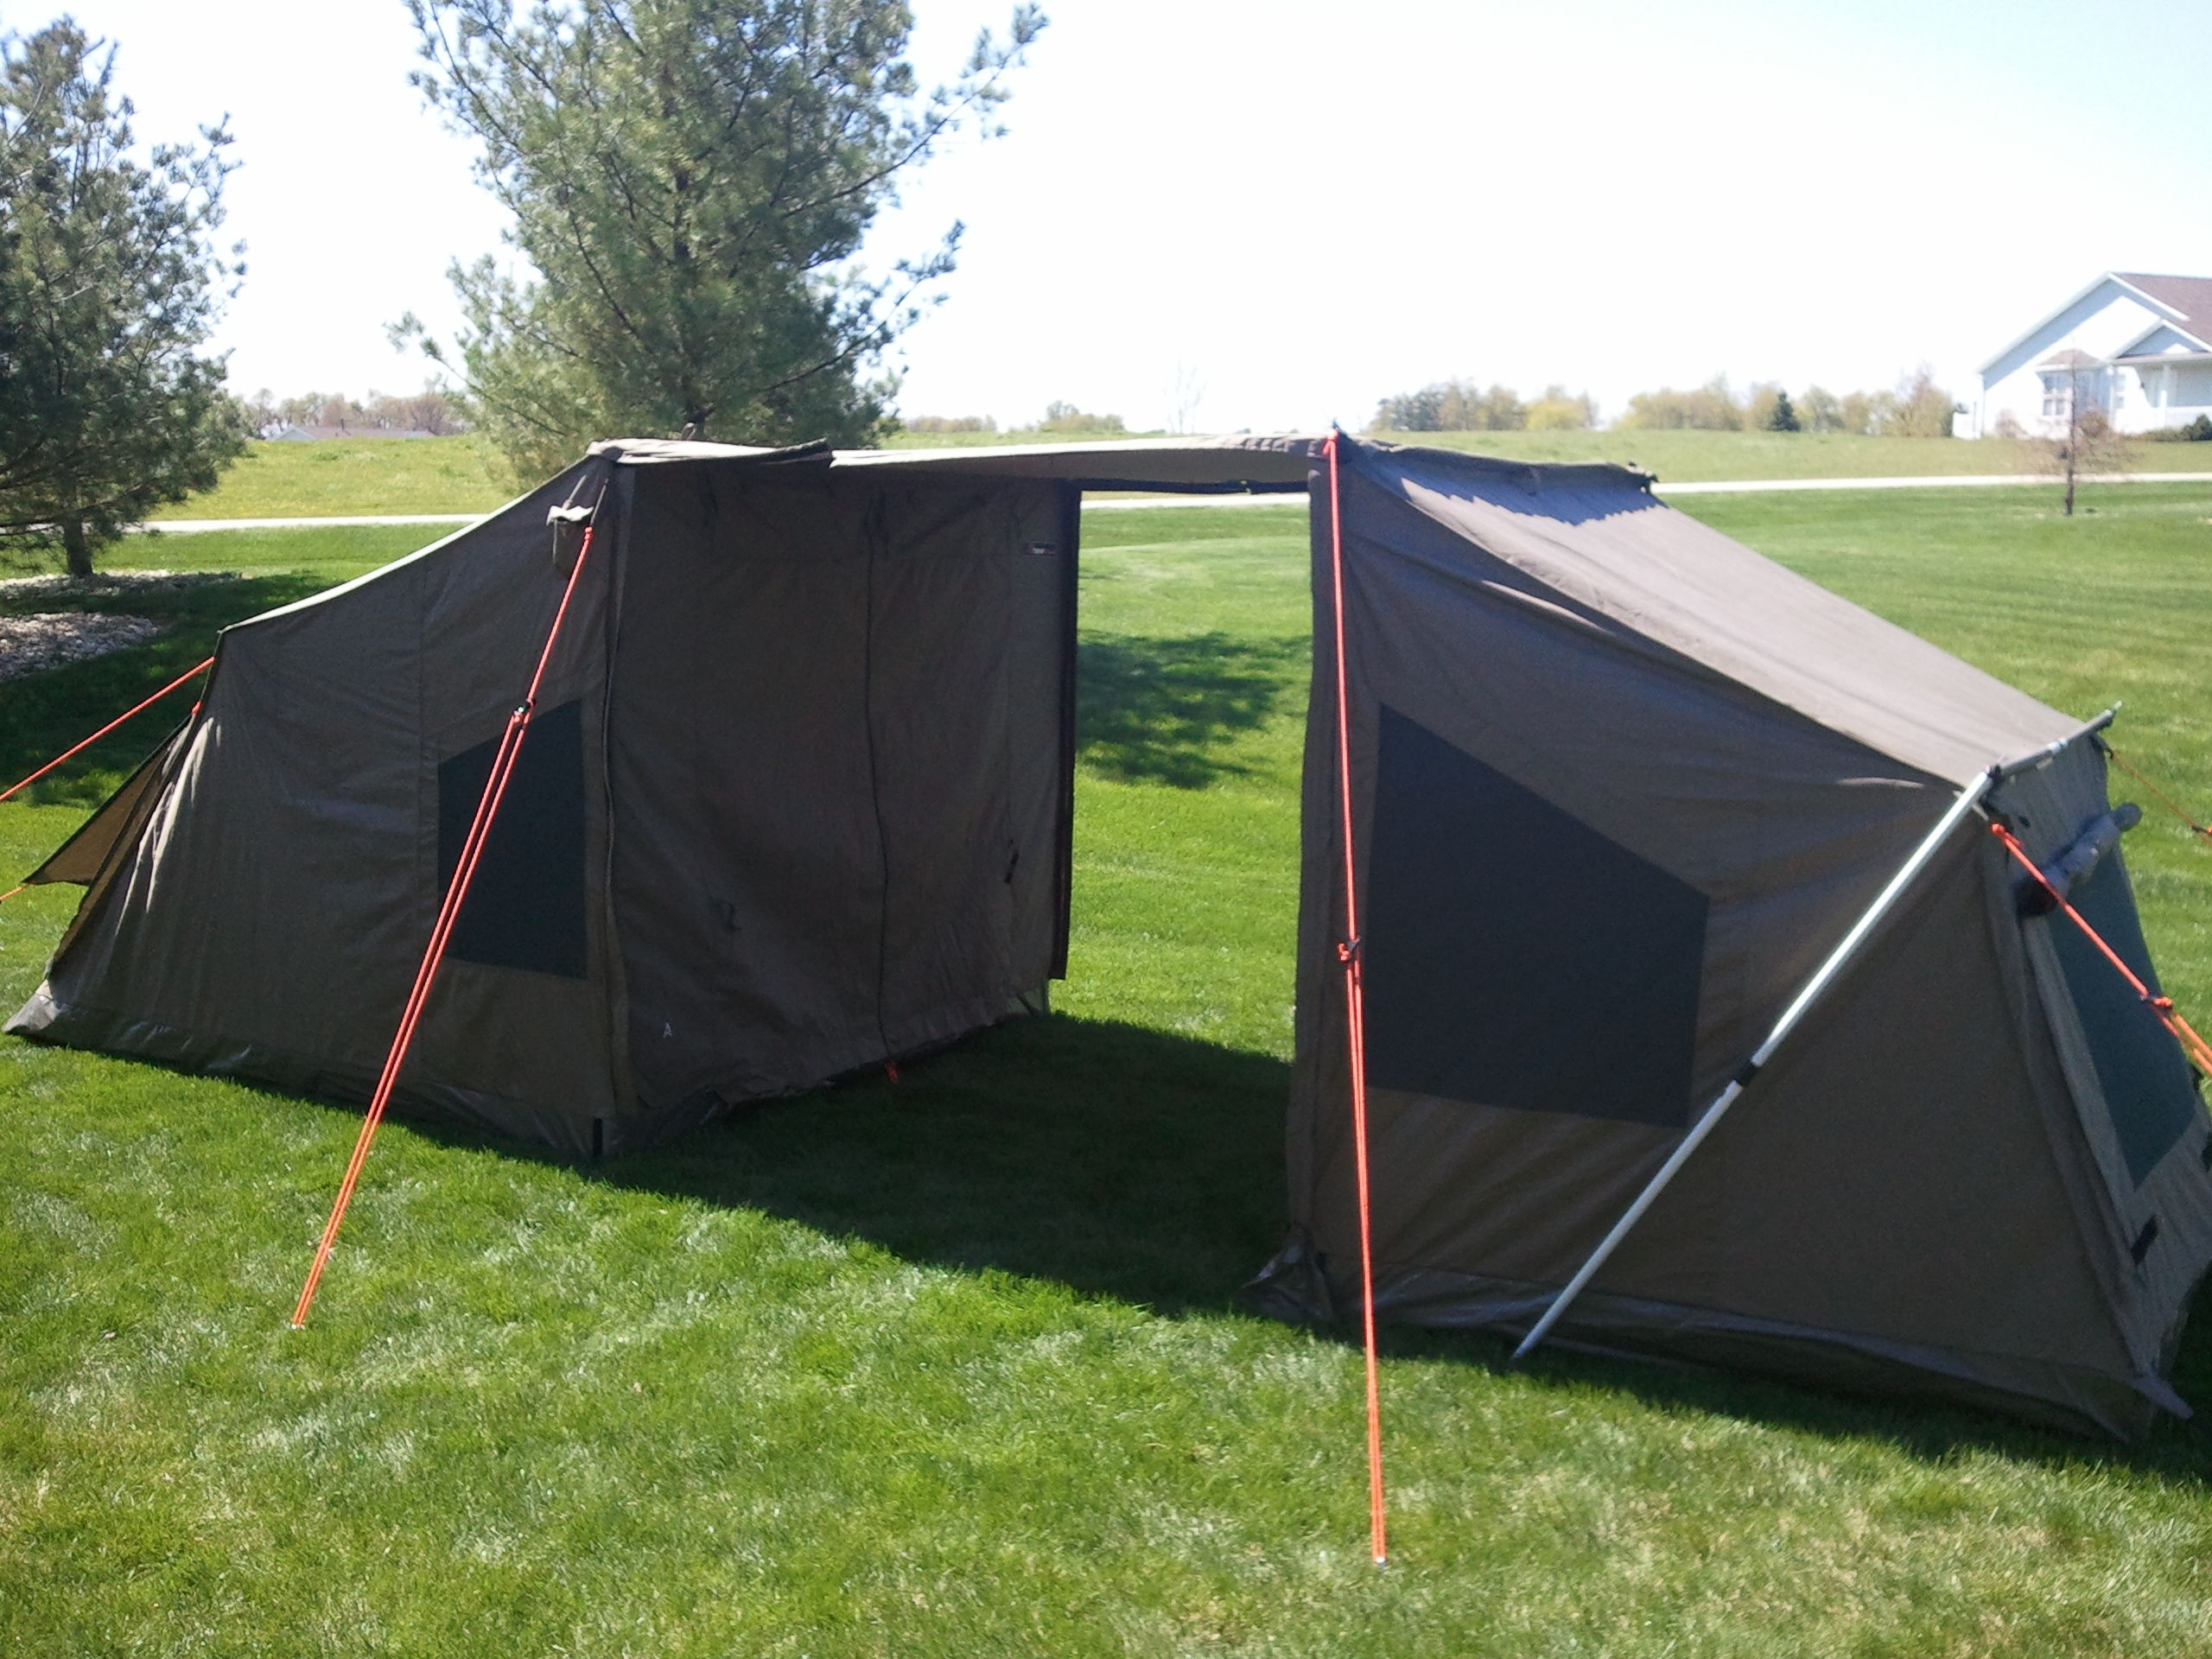 The OzTent Connected By Awning To An Accessory RV4 Tag A Long Tent For